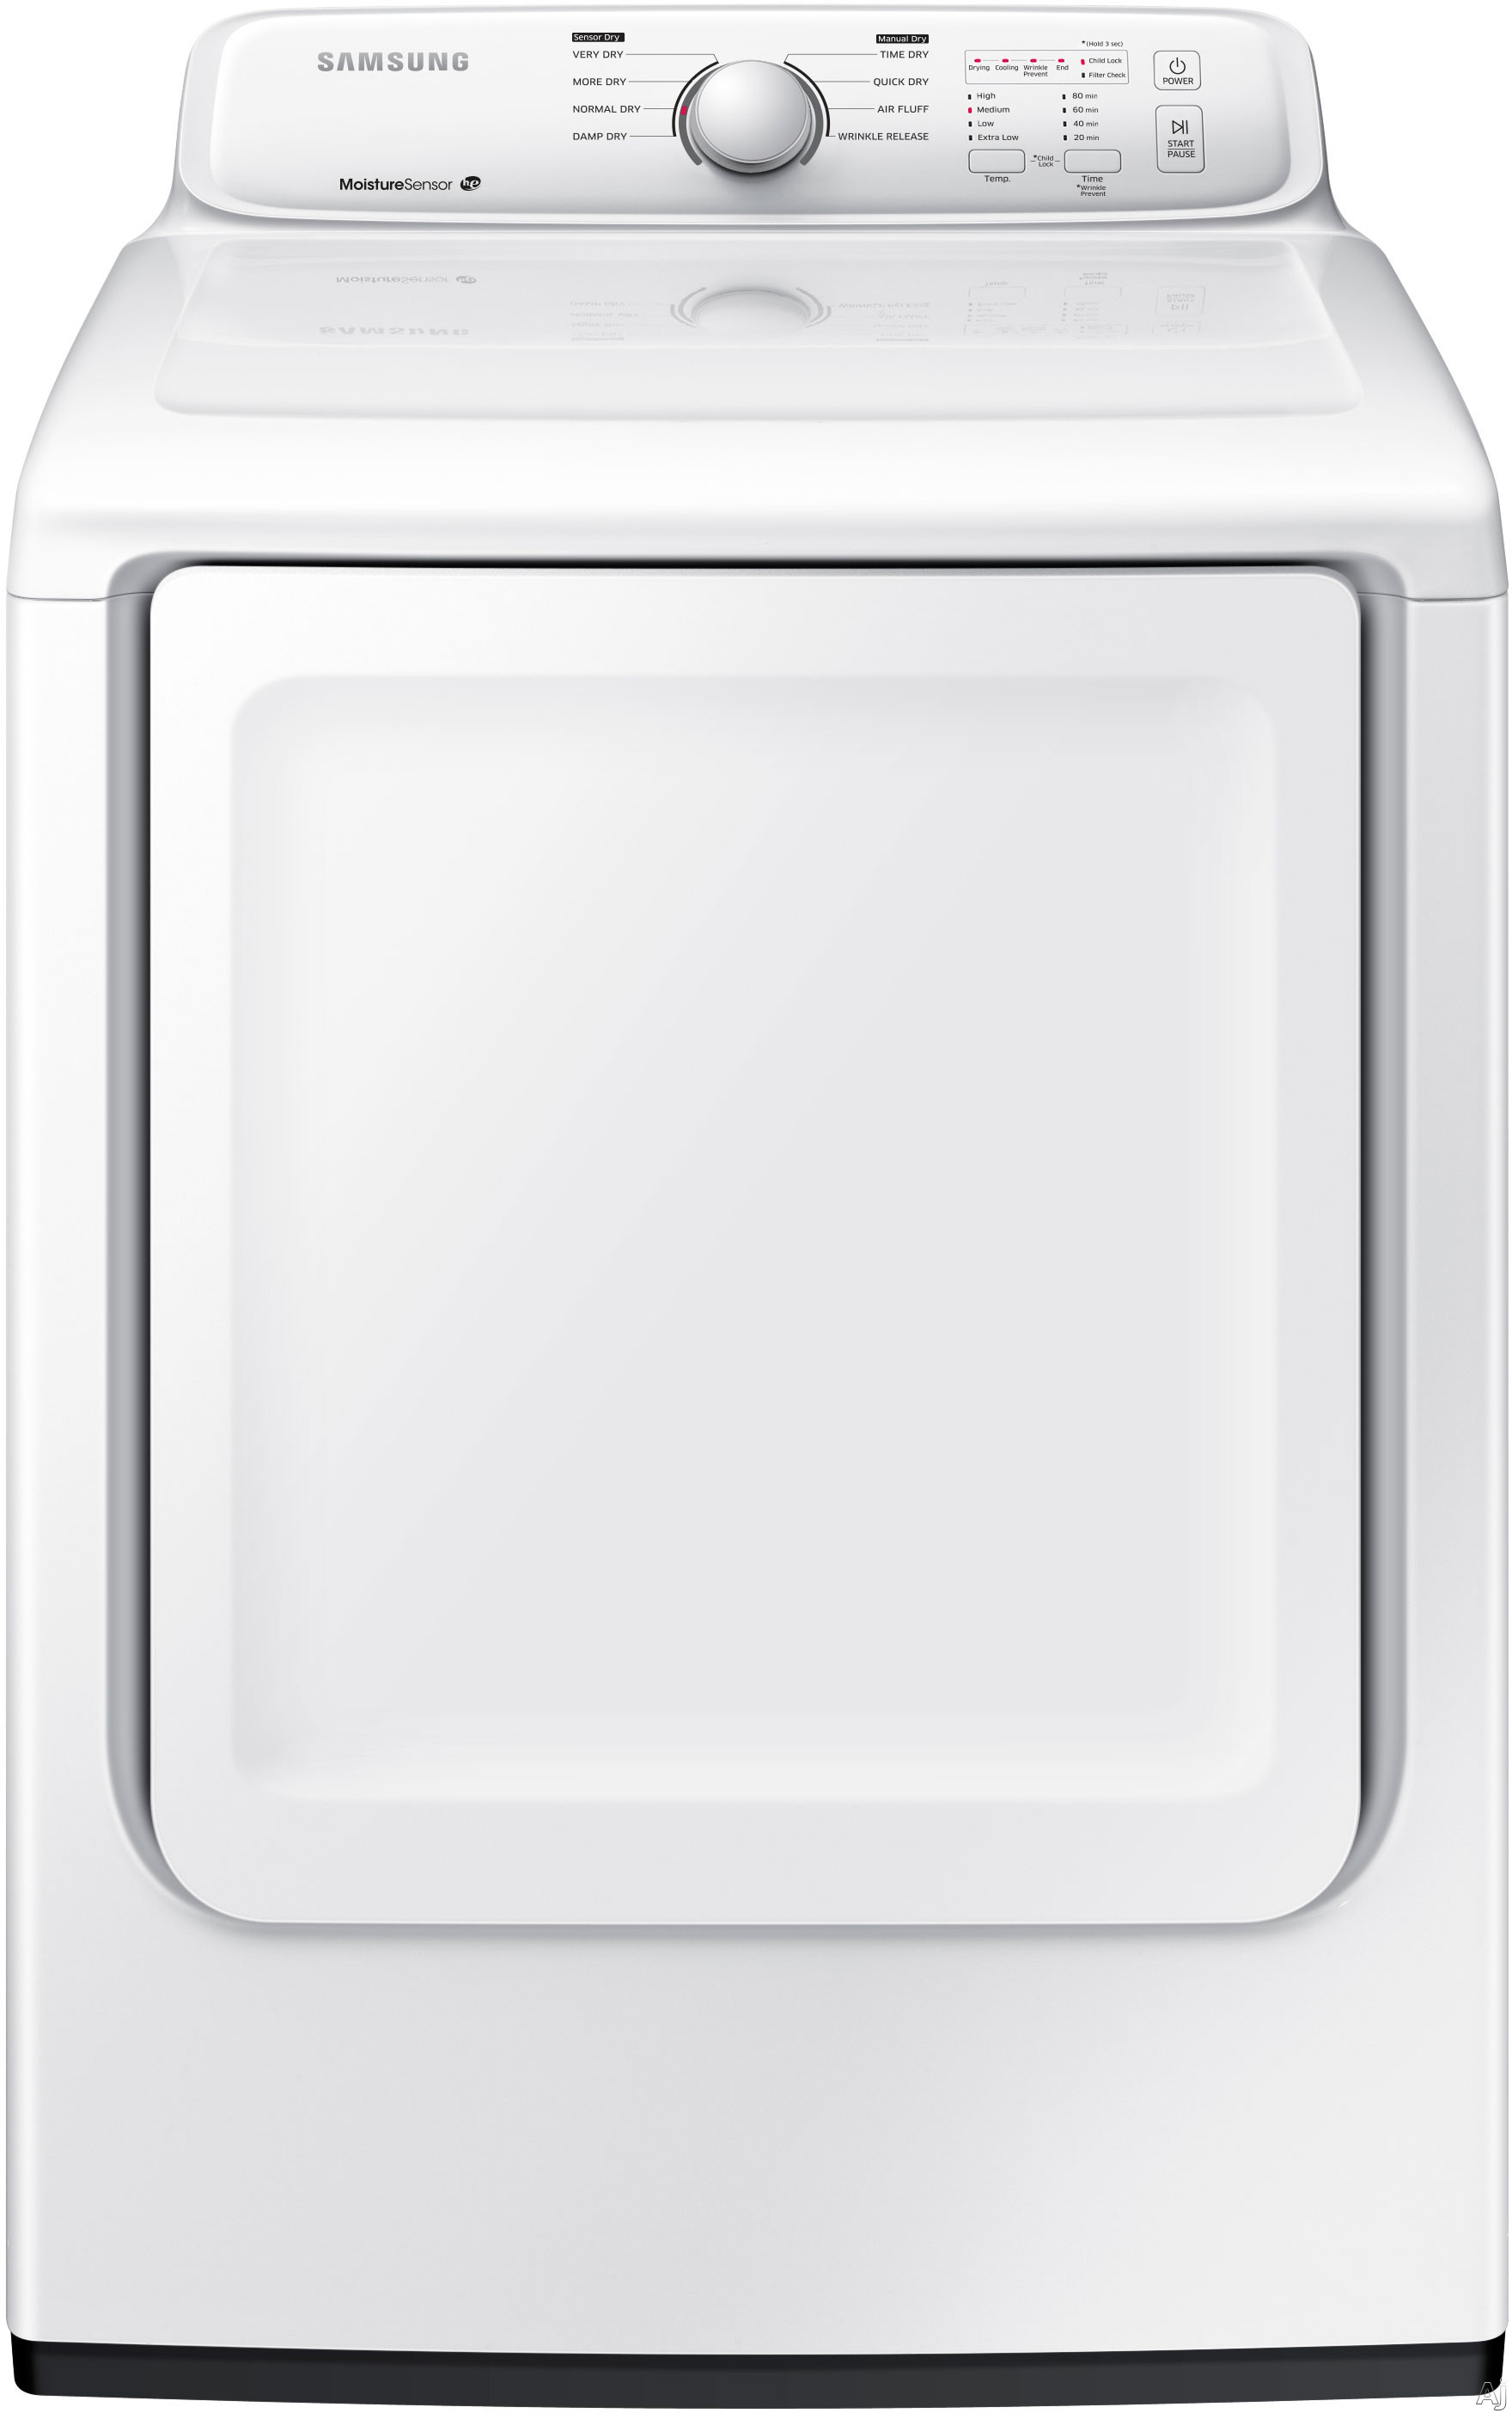 Samsung DV40J3000EW 27 Inch 7.2 cu. ft. Electric Dryer with 8 Dry Cycles, 4 Temperature Settings, Wrinkle Prevent, Lint Filter Indicator, Reversible Door and Sensor Dry Moisture Sensor DV40J3000EW